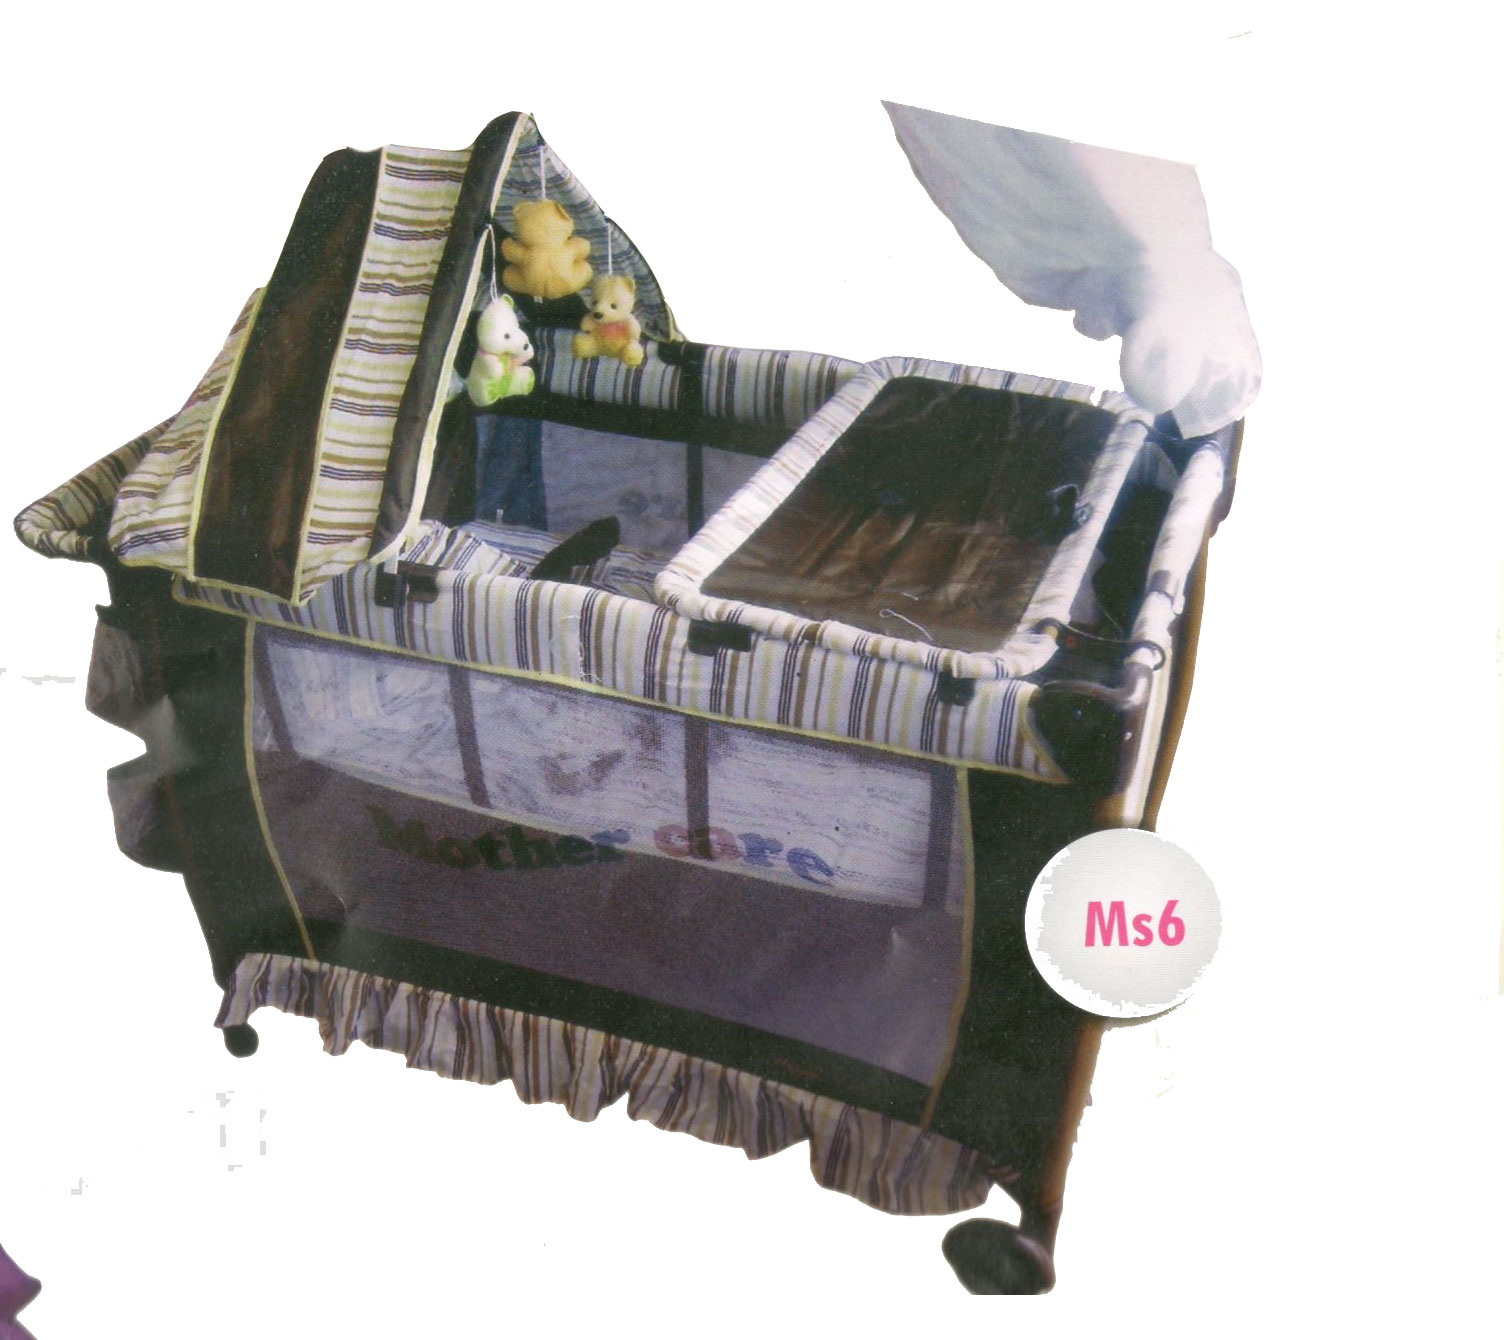 swing chair lagos exercises for older adults lmv happy winners baby bed ms6 monmartt